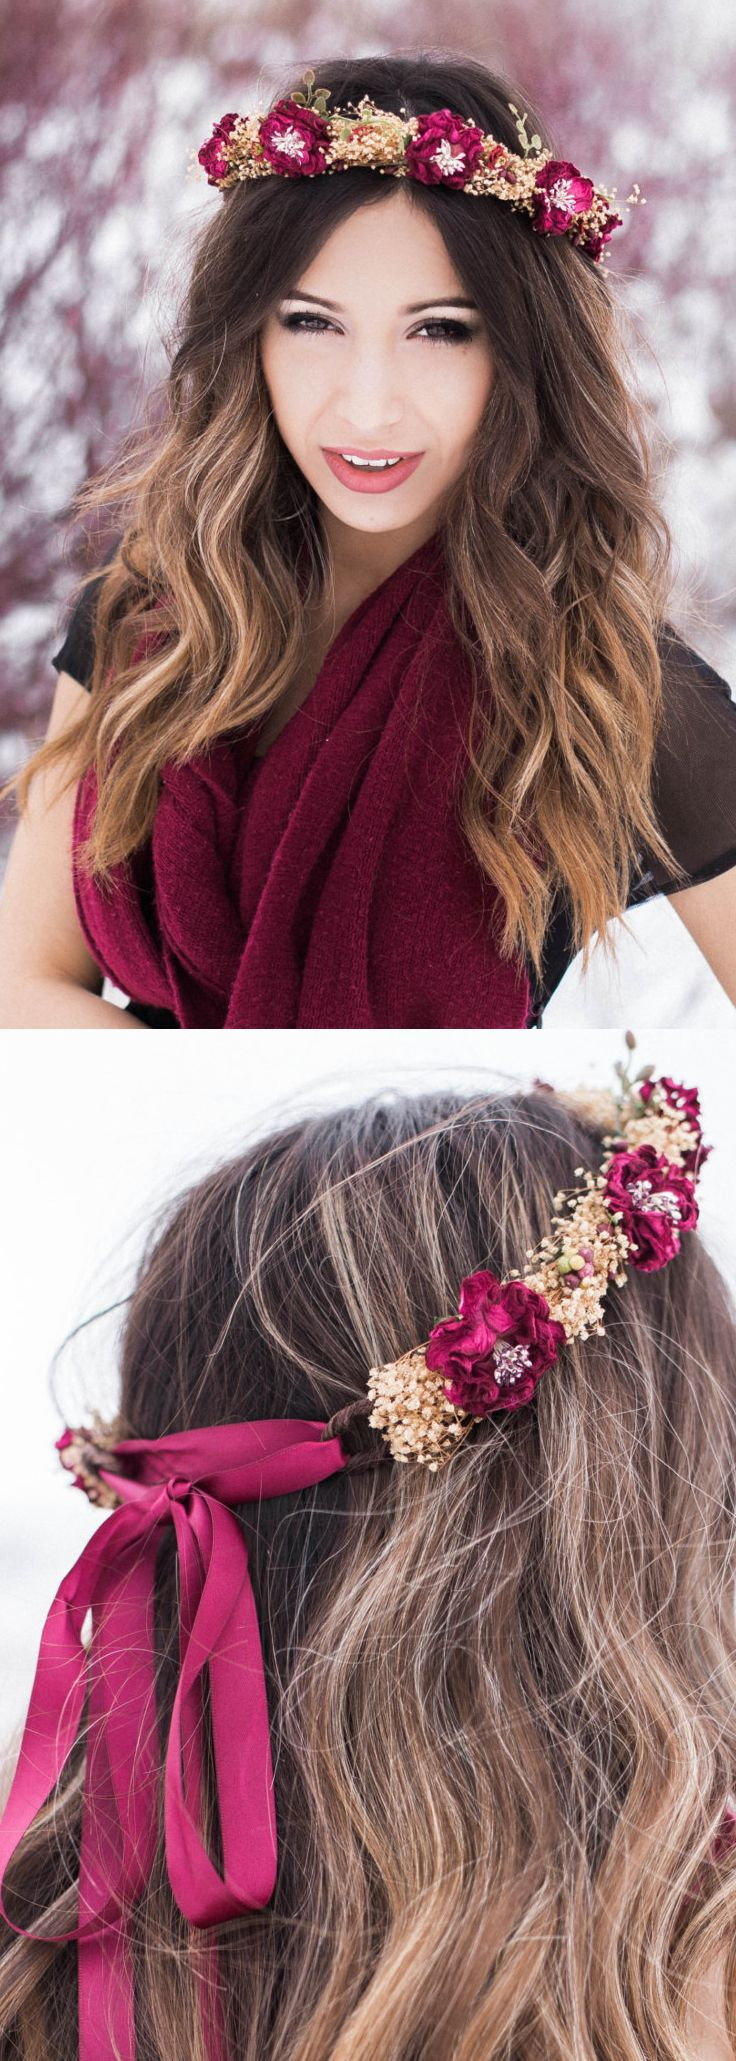 Winter wedding floral crown. The beige gold and deep wine hues of this halo are rich and beautiful. This crown features preserved baby's breath (gypsum stardust) that dances around a rustic, dark brown bark-covered vine crown. Great for bridesmaids. Winter wonderland wedding ideas. Christmas wedding outfits. Winter weddimng inspiration. #christmaswedding #winterwedding #bridesmaids #flowrgirls #winterparty #antlers #christmasparty #affiliatelink #party #fashion #ootd